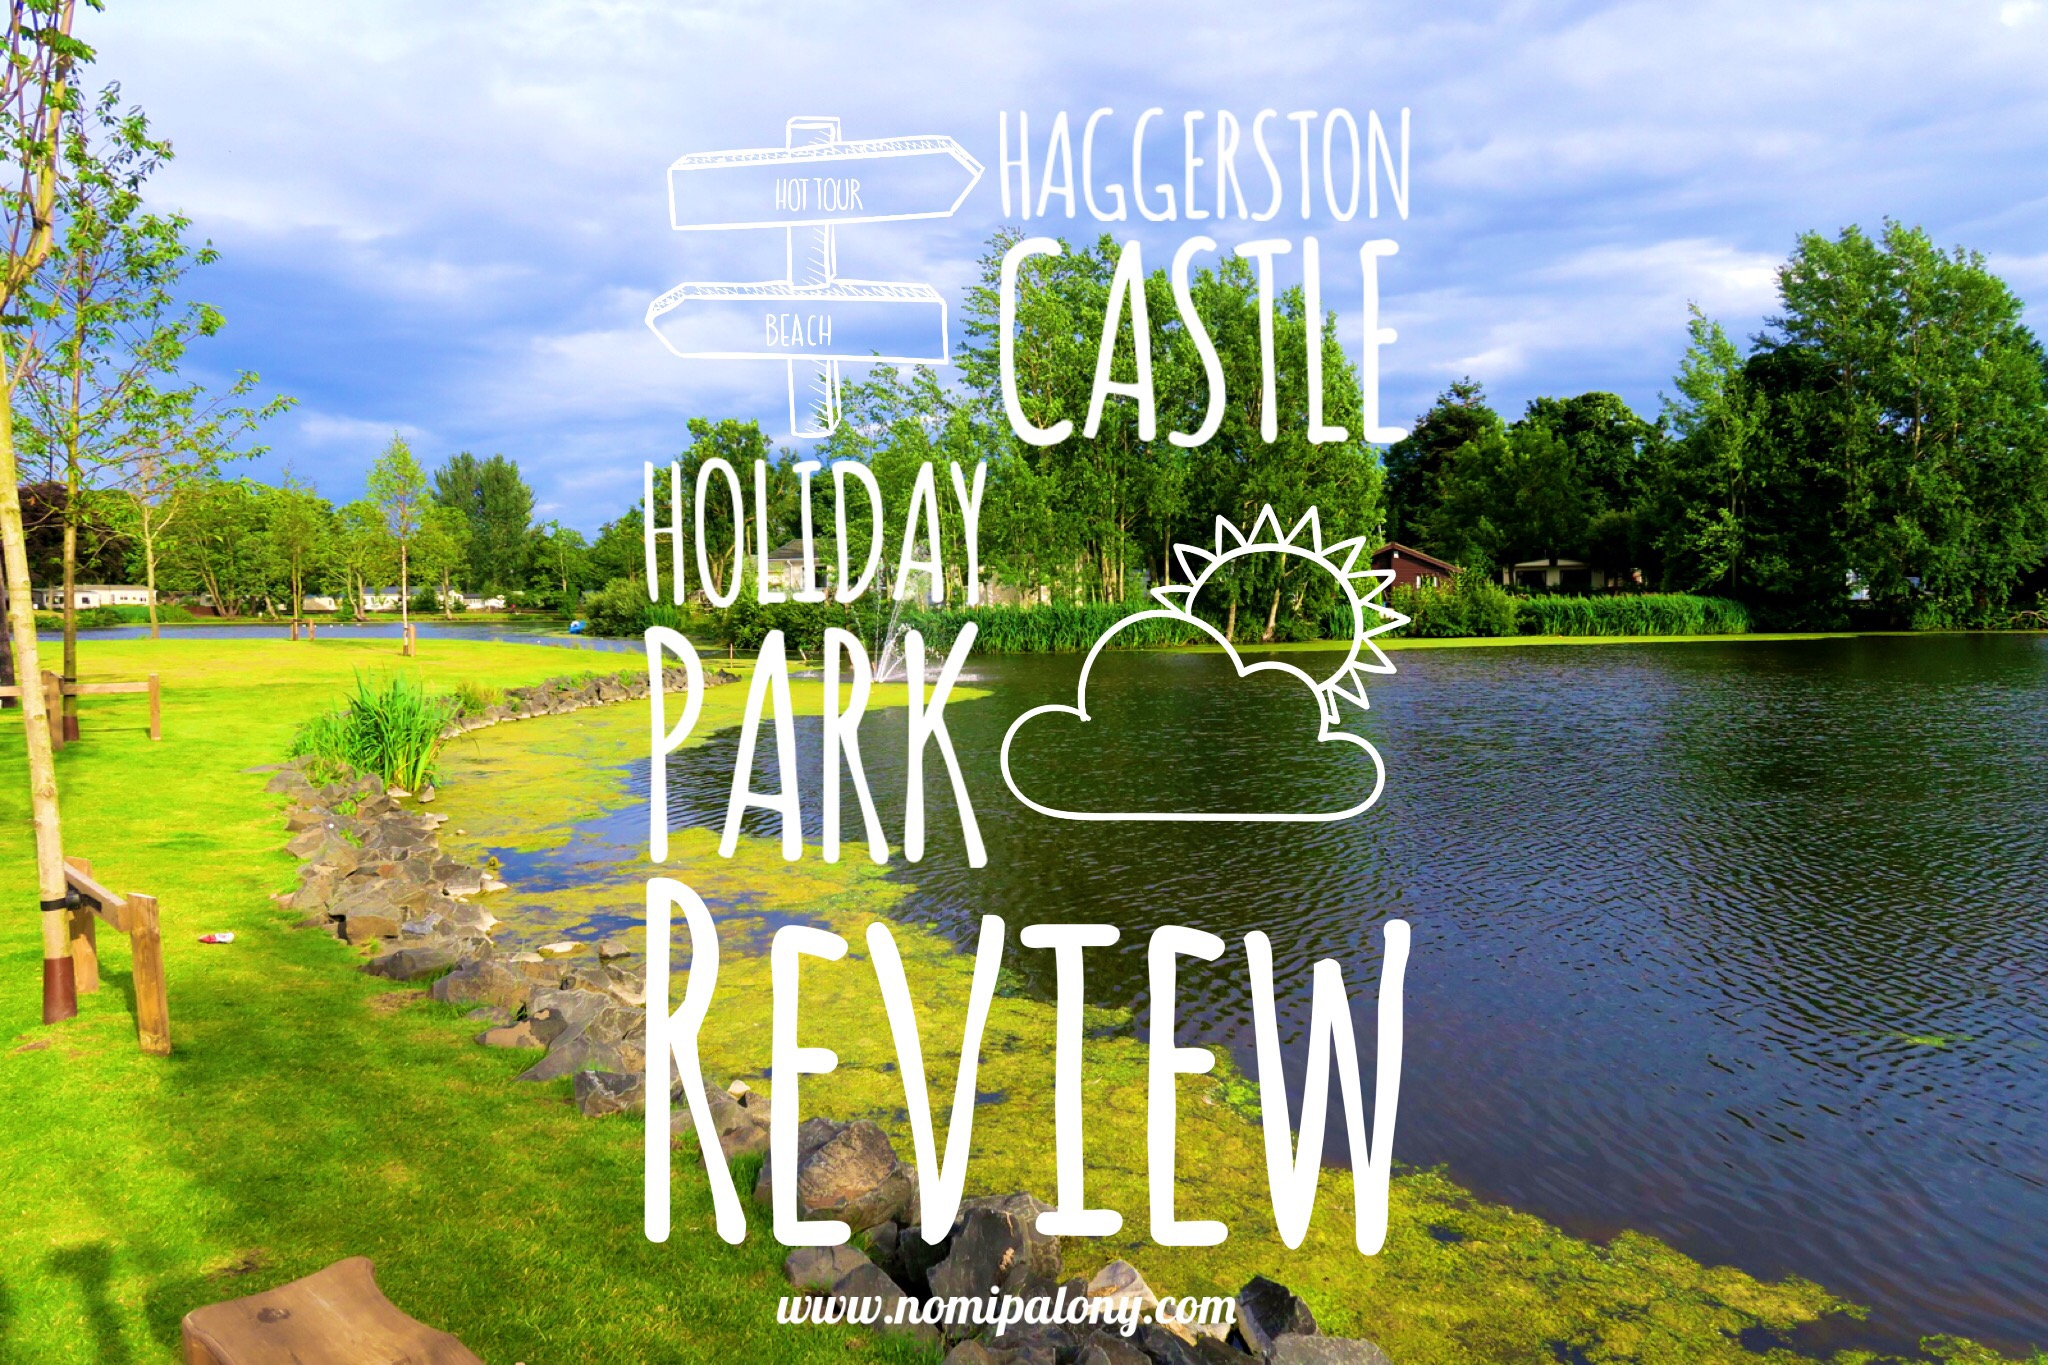 Family holiday review: Haggerston Castle Holiday Park, Berwick-upon-Tweed